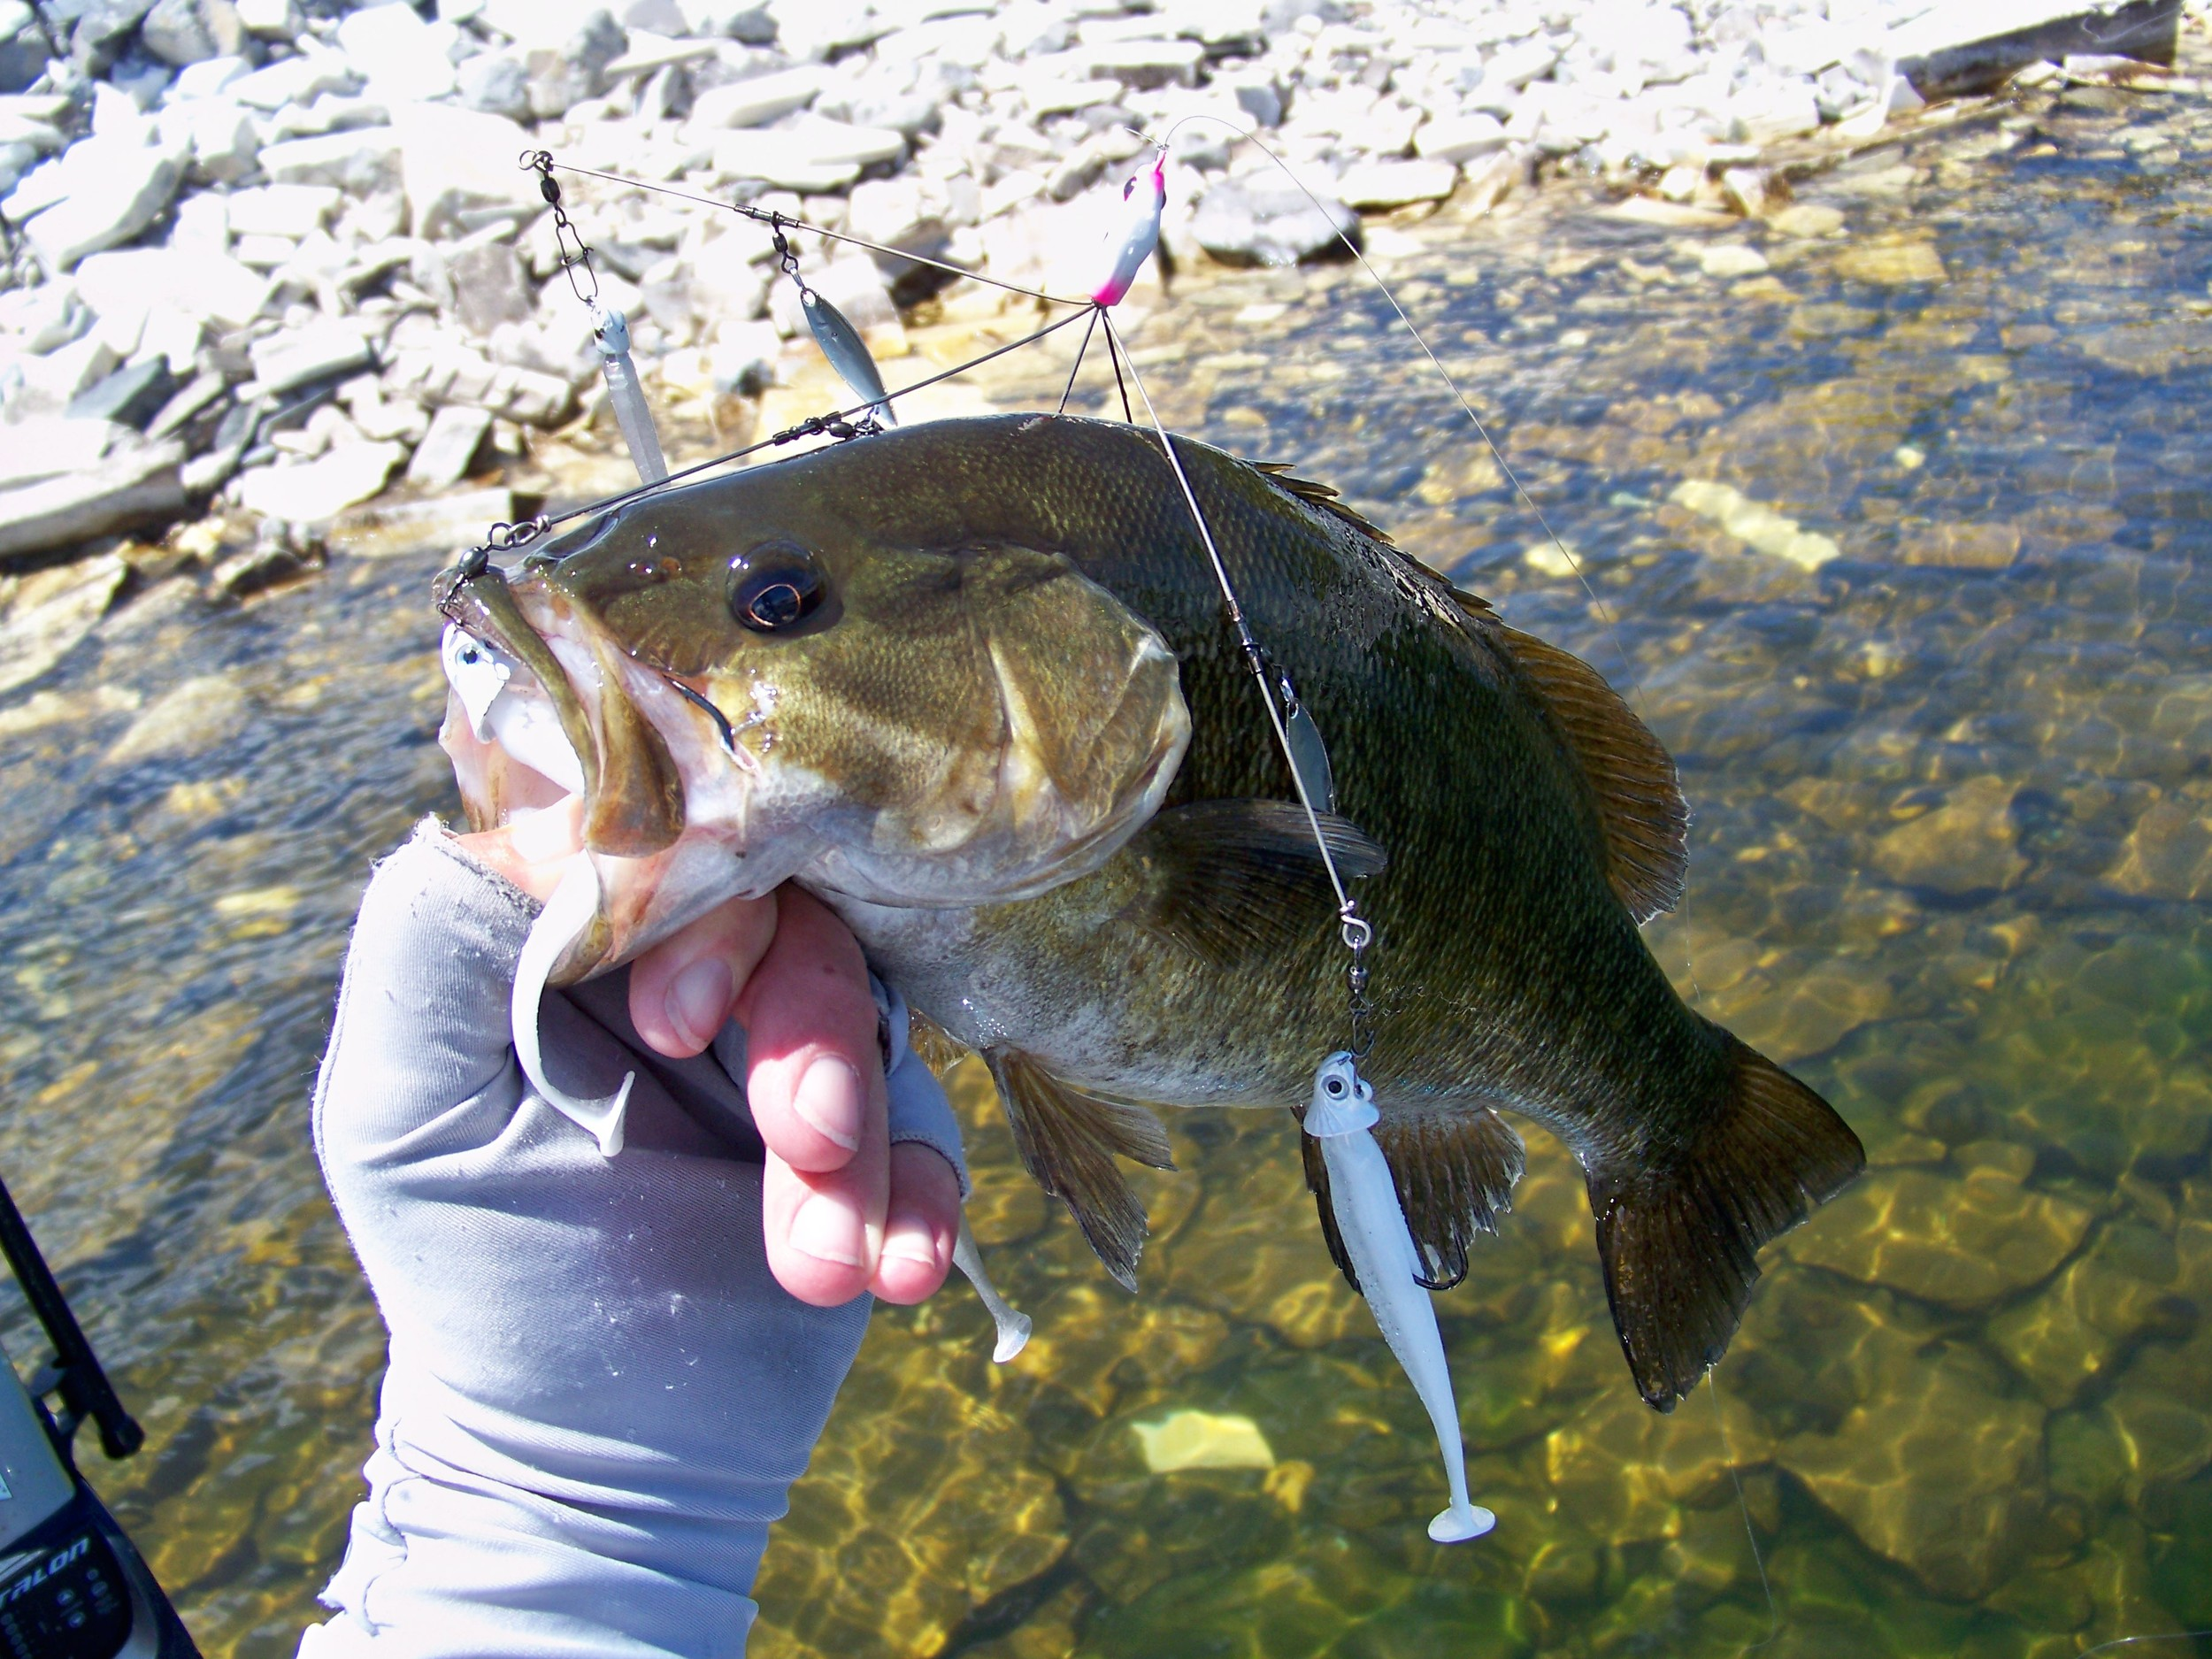 The Umbrella Rig produced the majority of our fish that were primarily smallmouth bass.